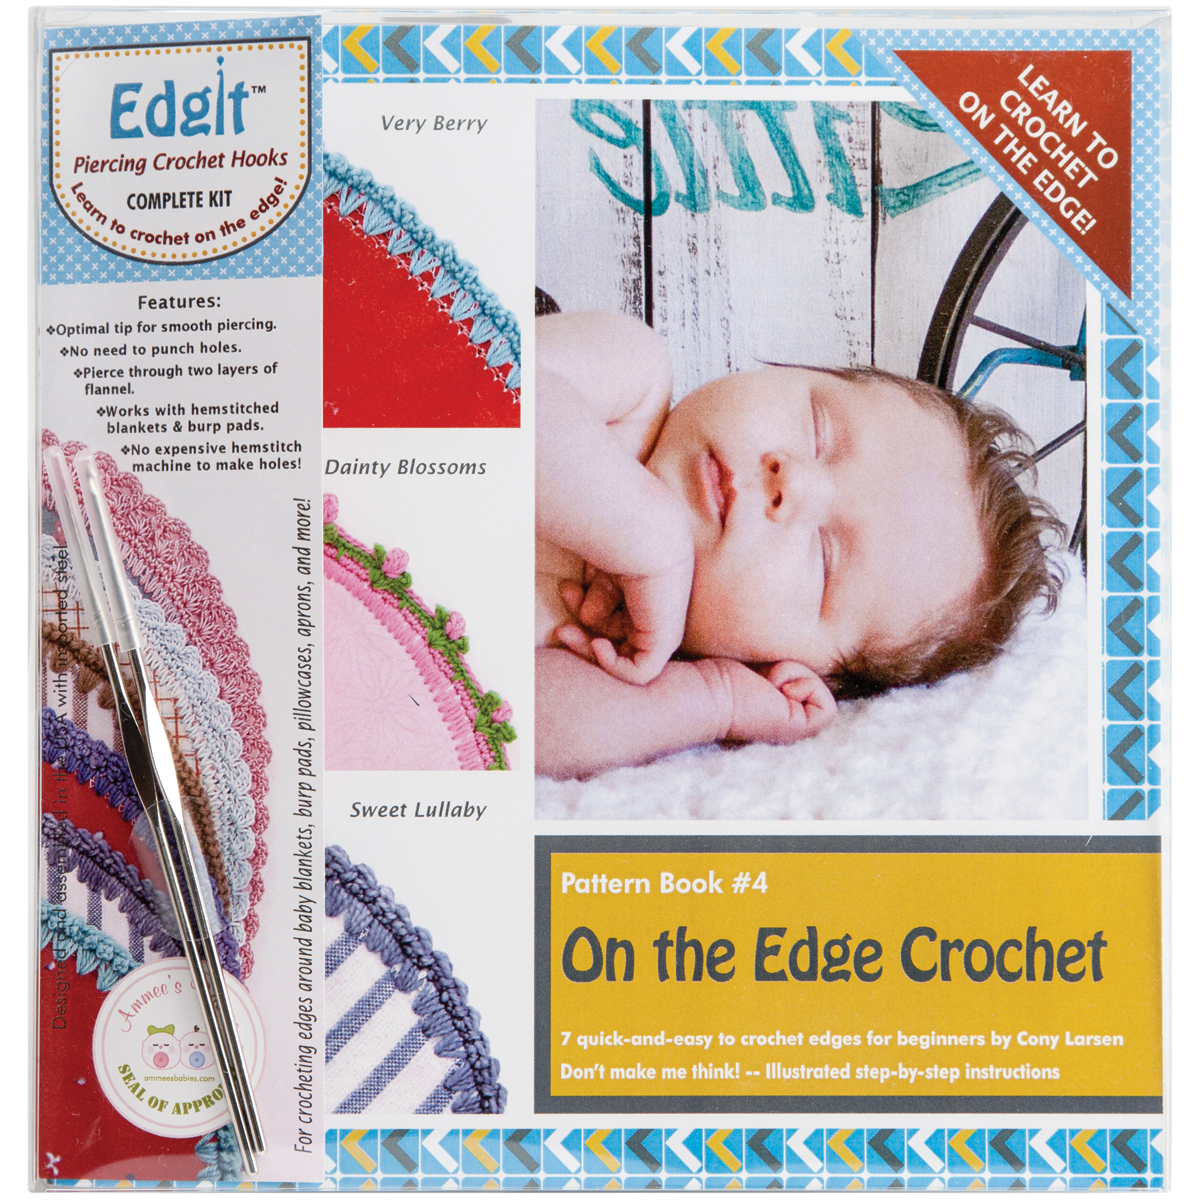 AMMEES BABIES Edgit Piercing Crochet Book, Hook and Burp Cloth Kit Multi-Colored